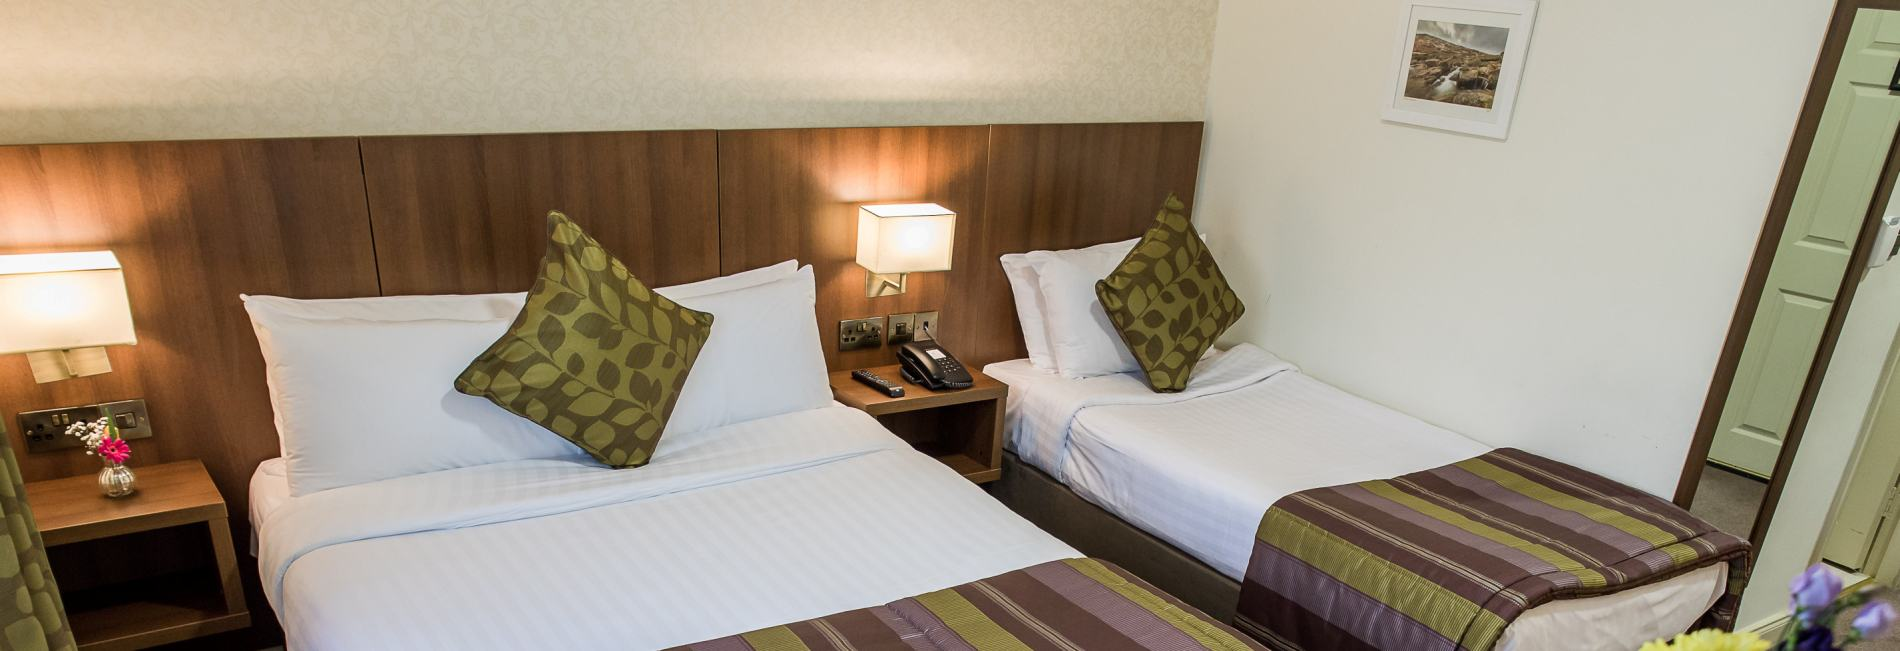 Arklow Bay Hotel family friendly bedroom